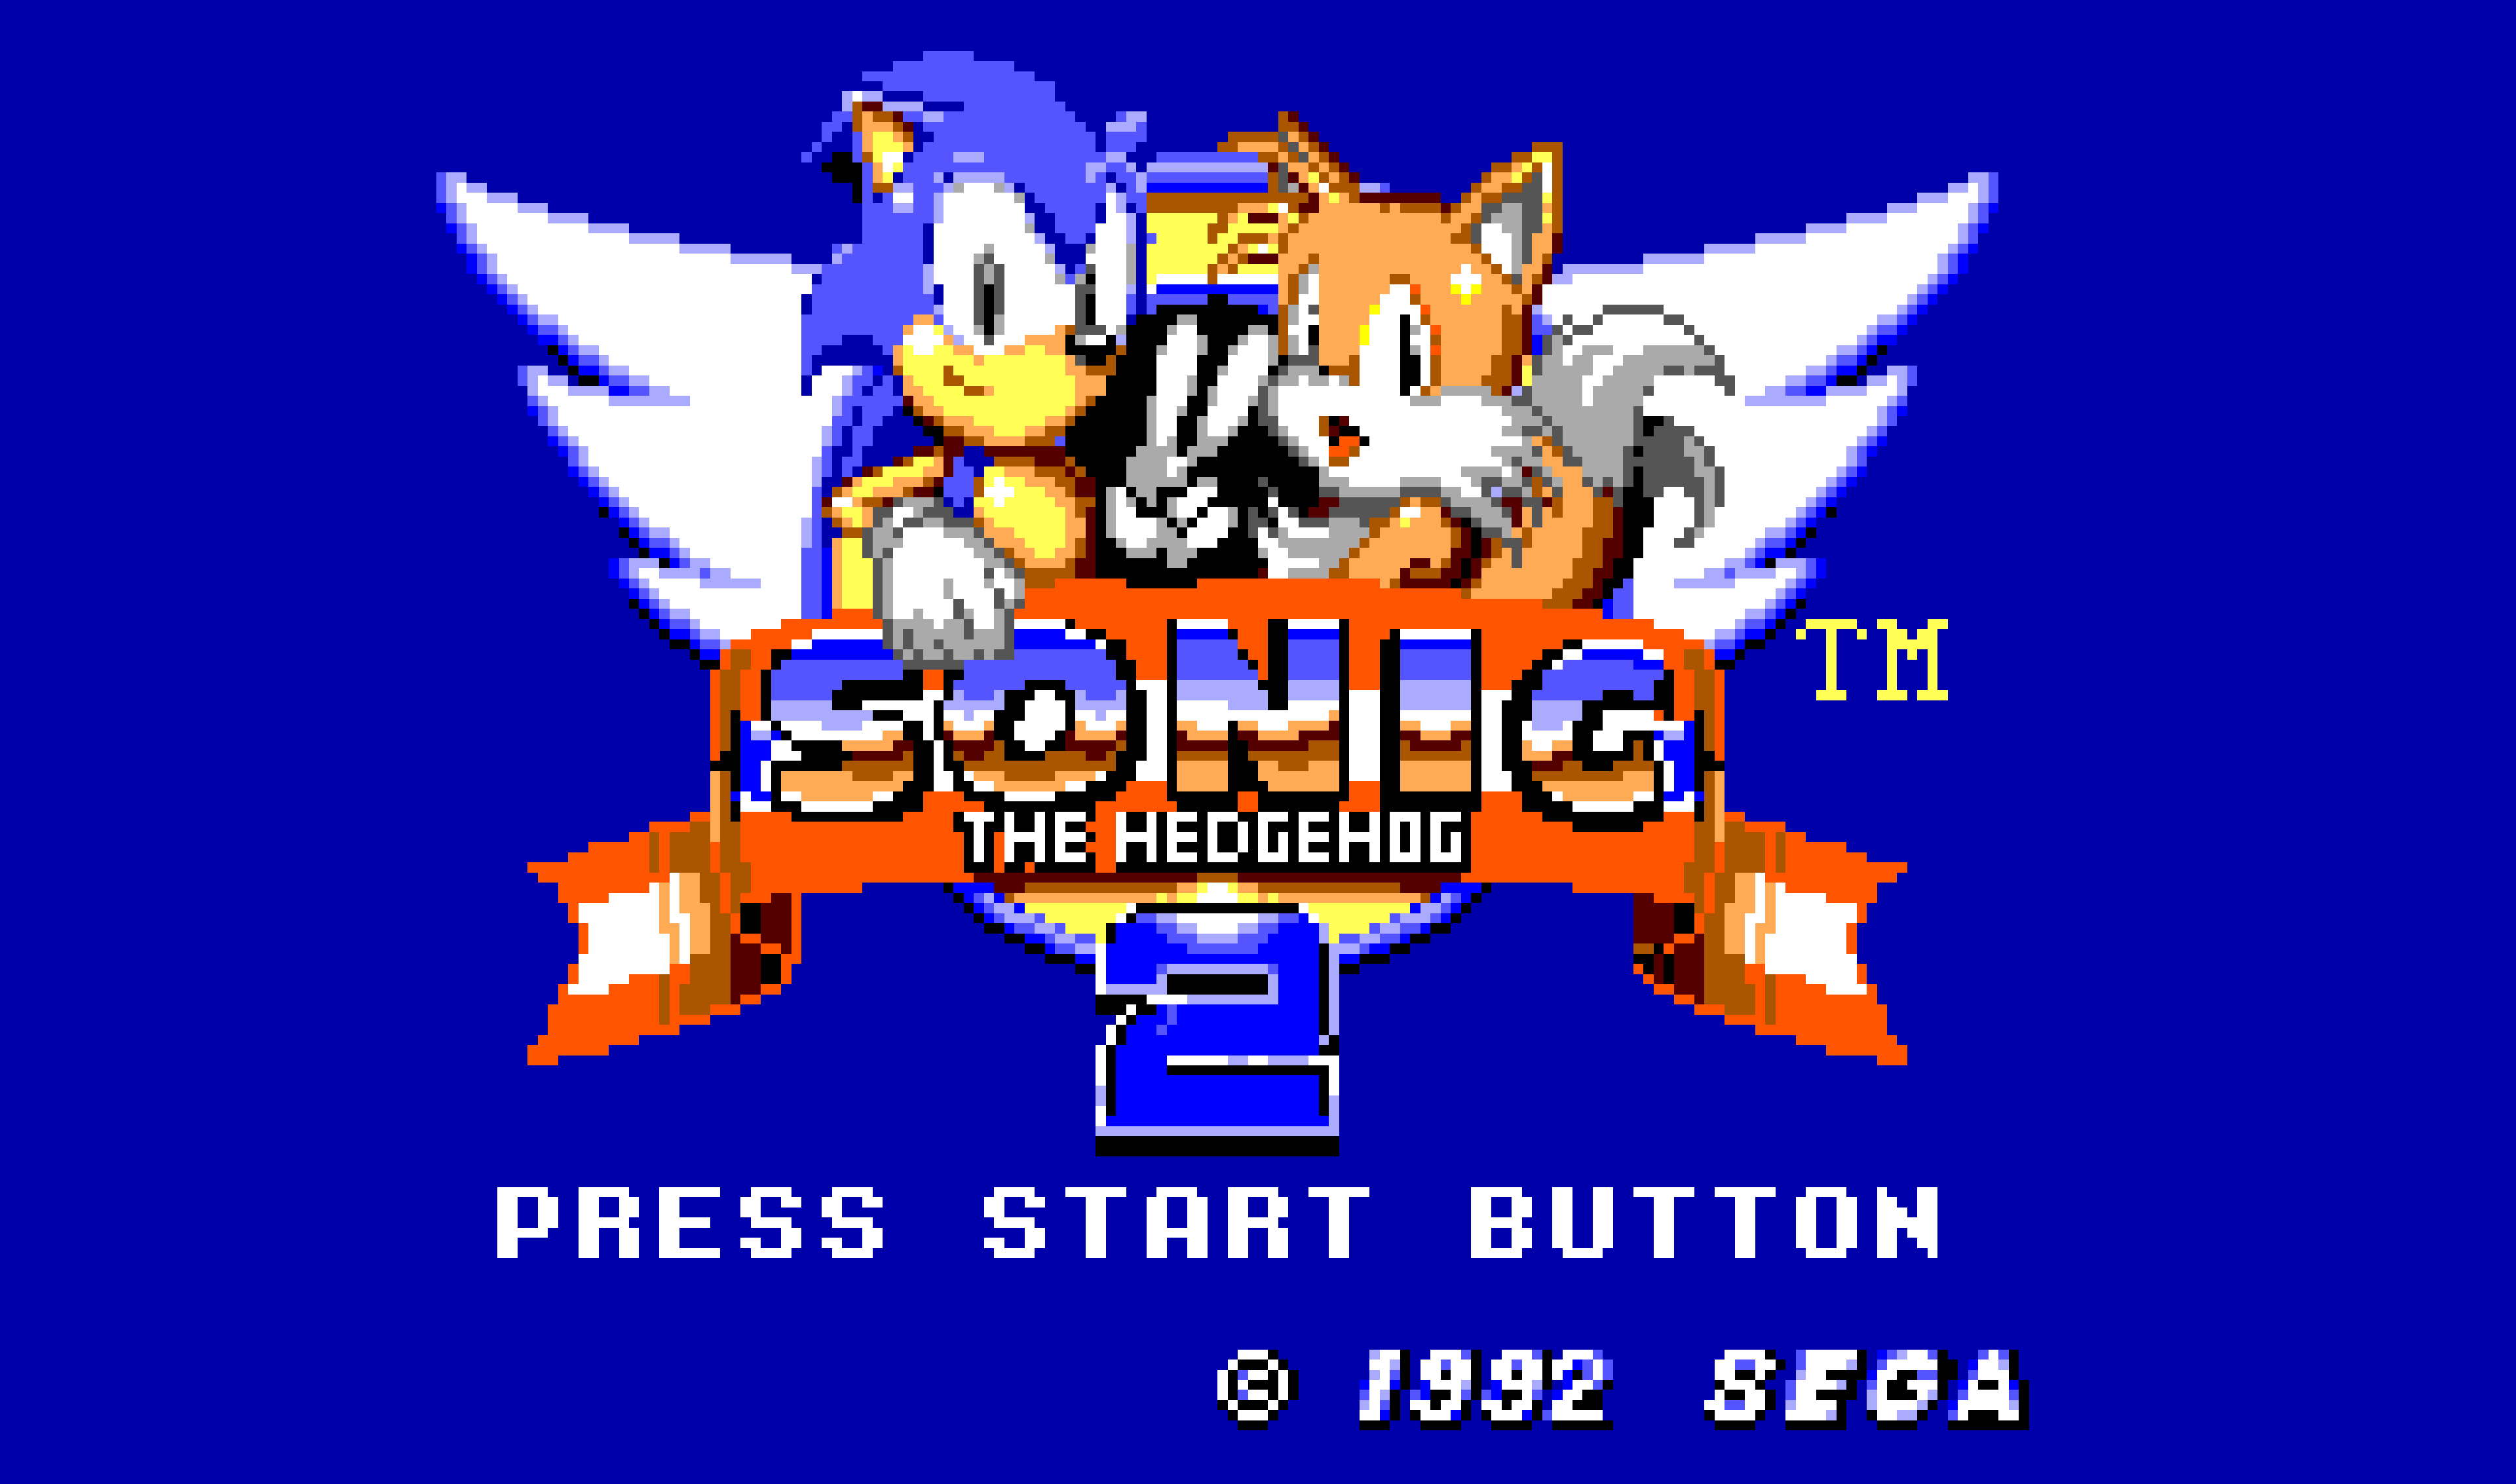 The title scren of Sonic the Hedgehog 2.